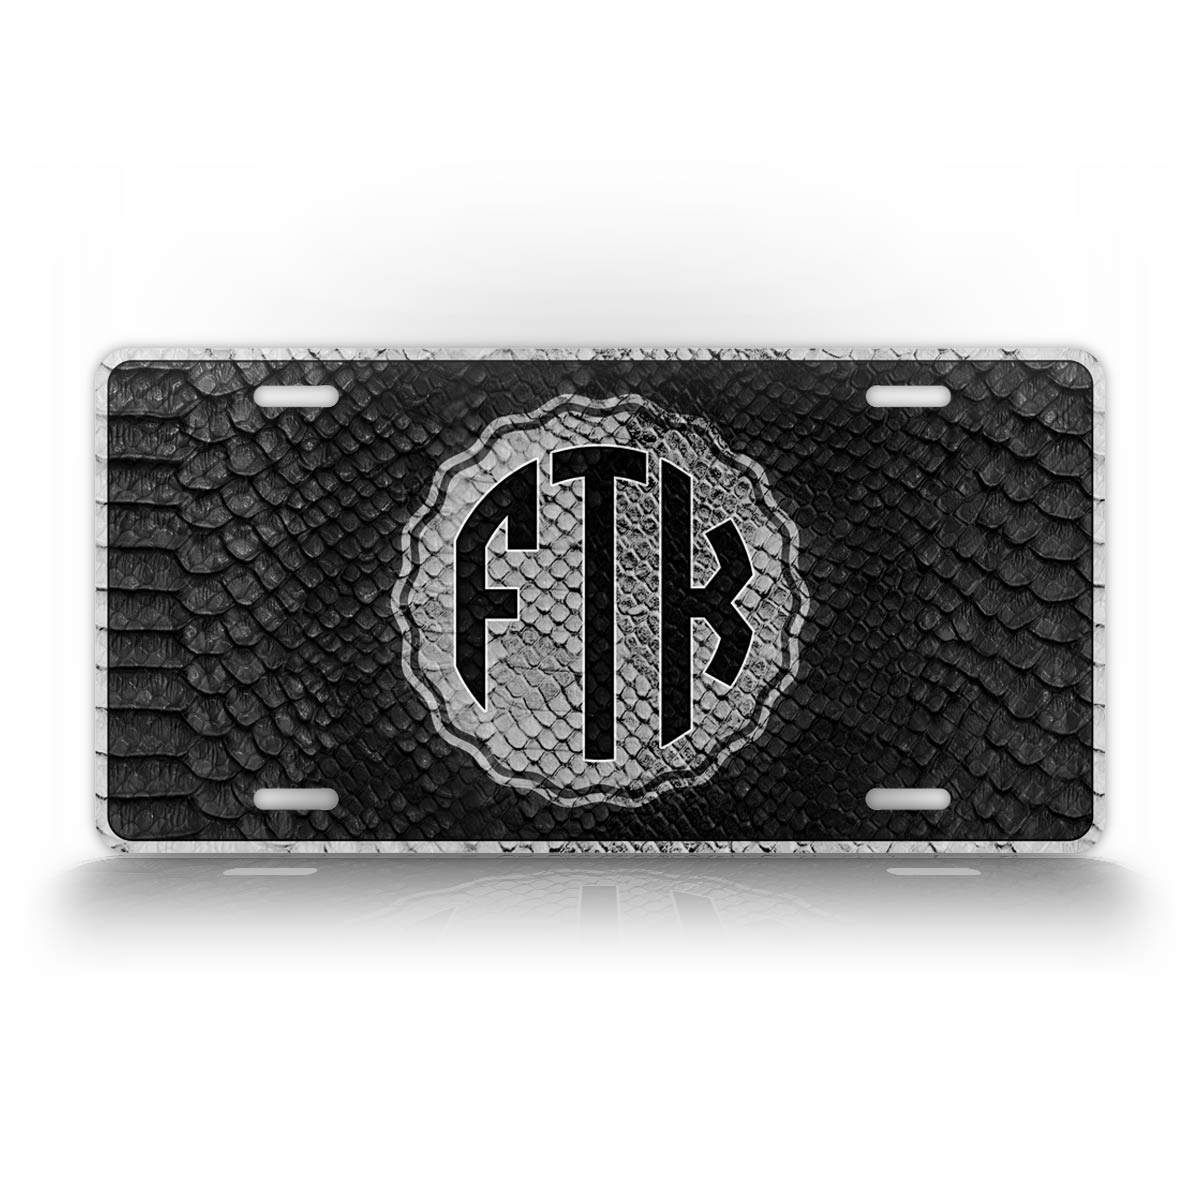 Personalized Text Black Snakeskin Monogram License Plate